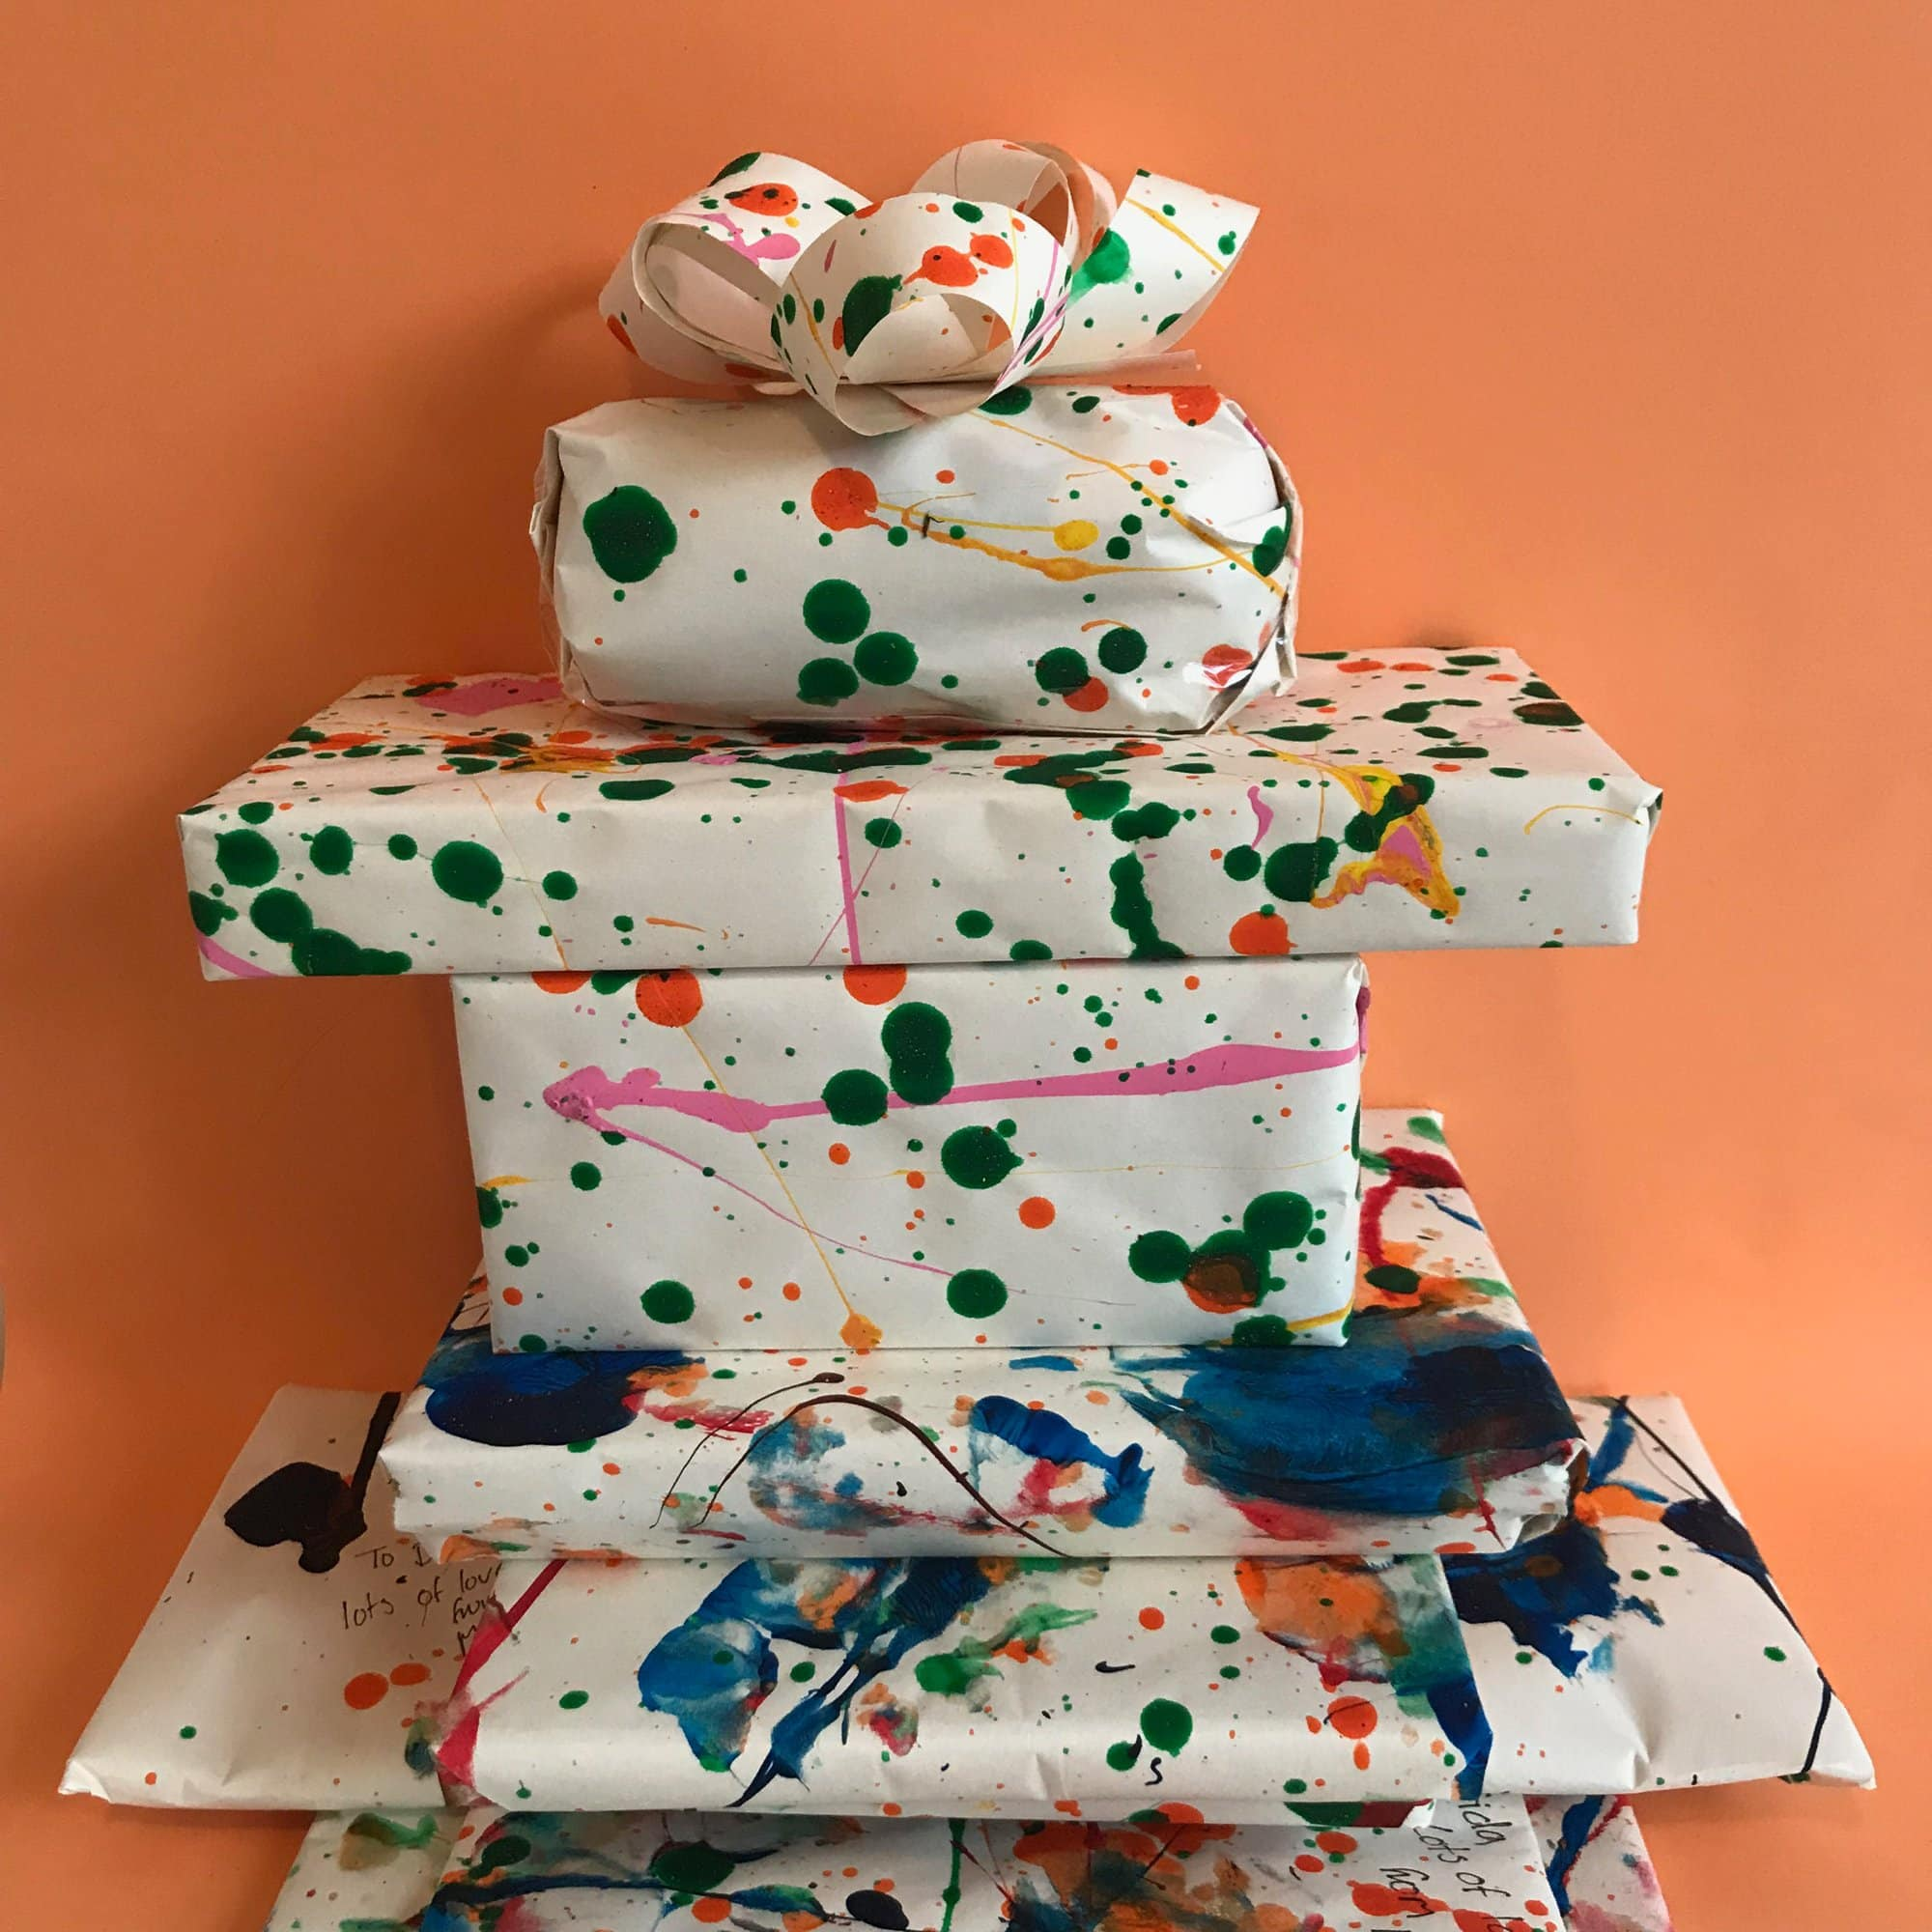 Use these quick, easy & playful ideas to make your own wrapping paper. Children will love sharing their creativity with family members!